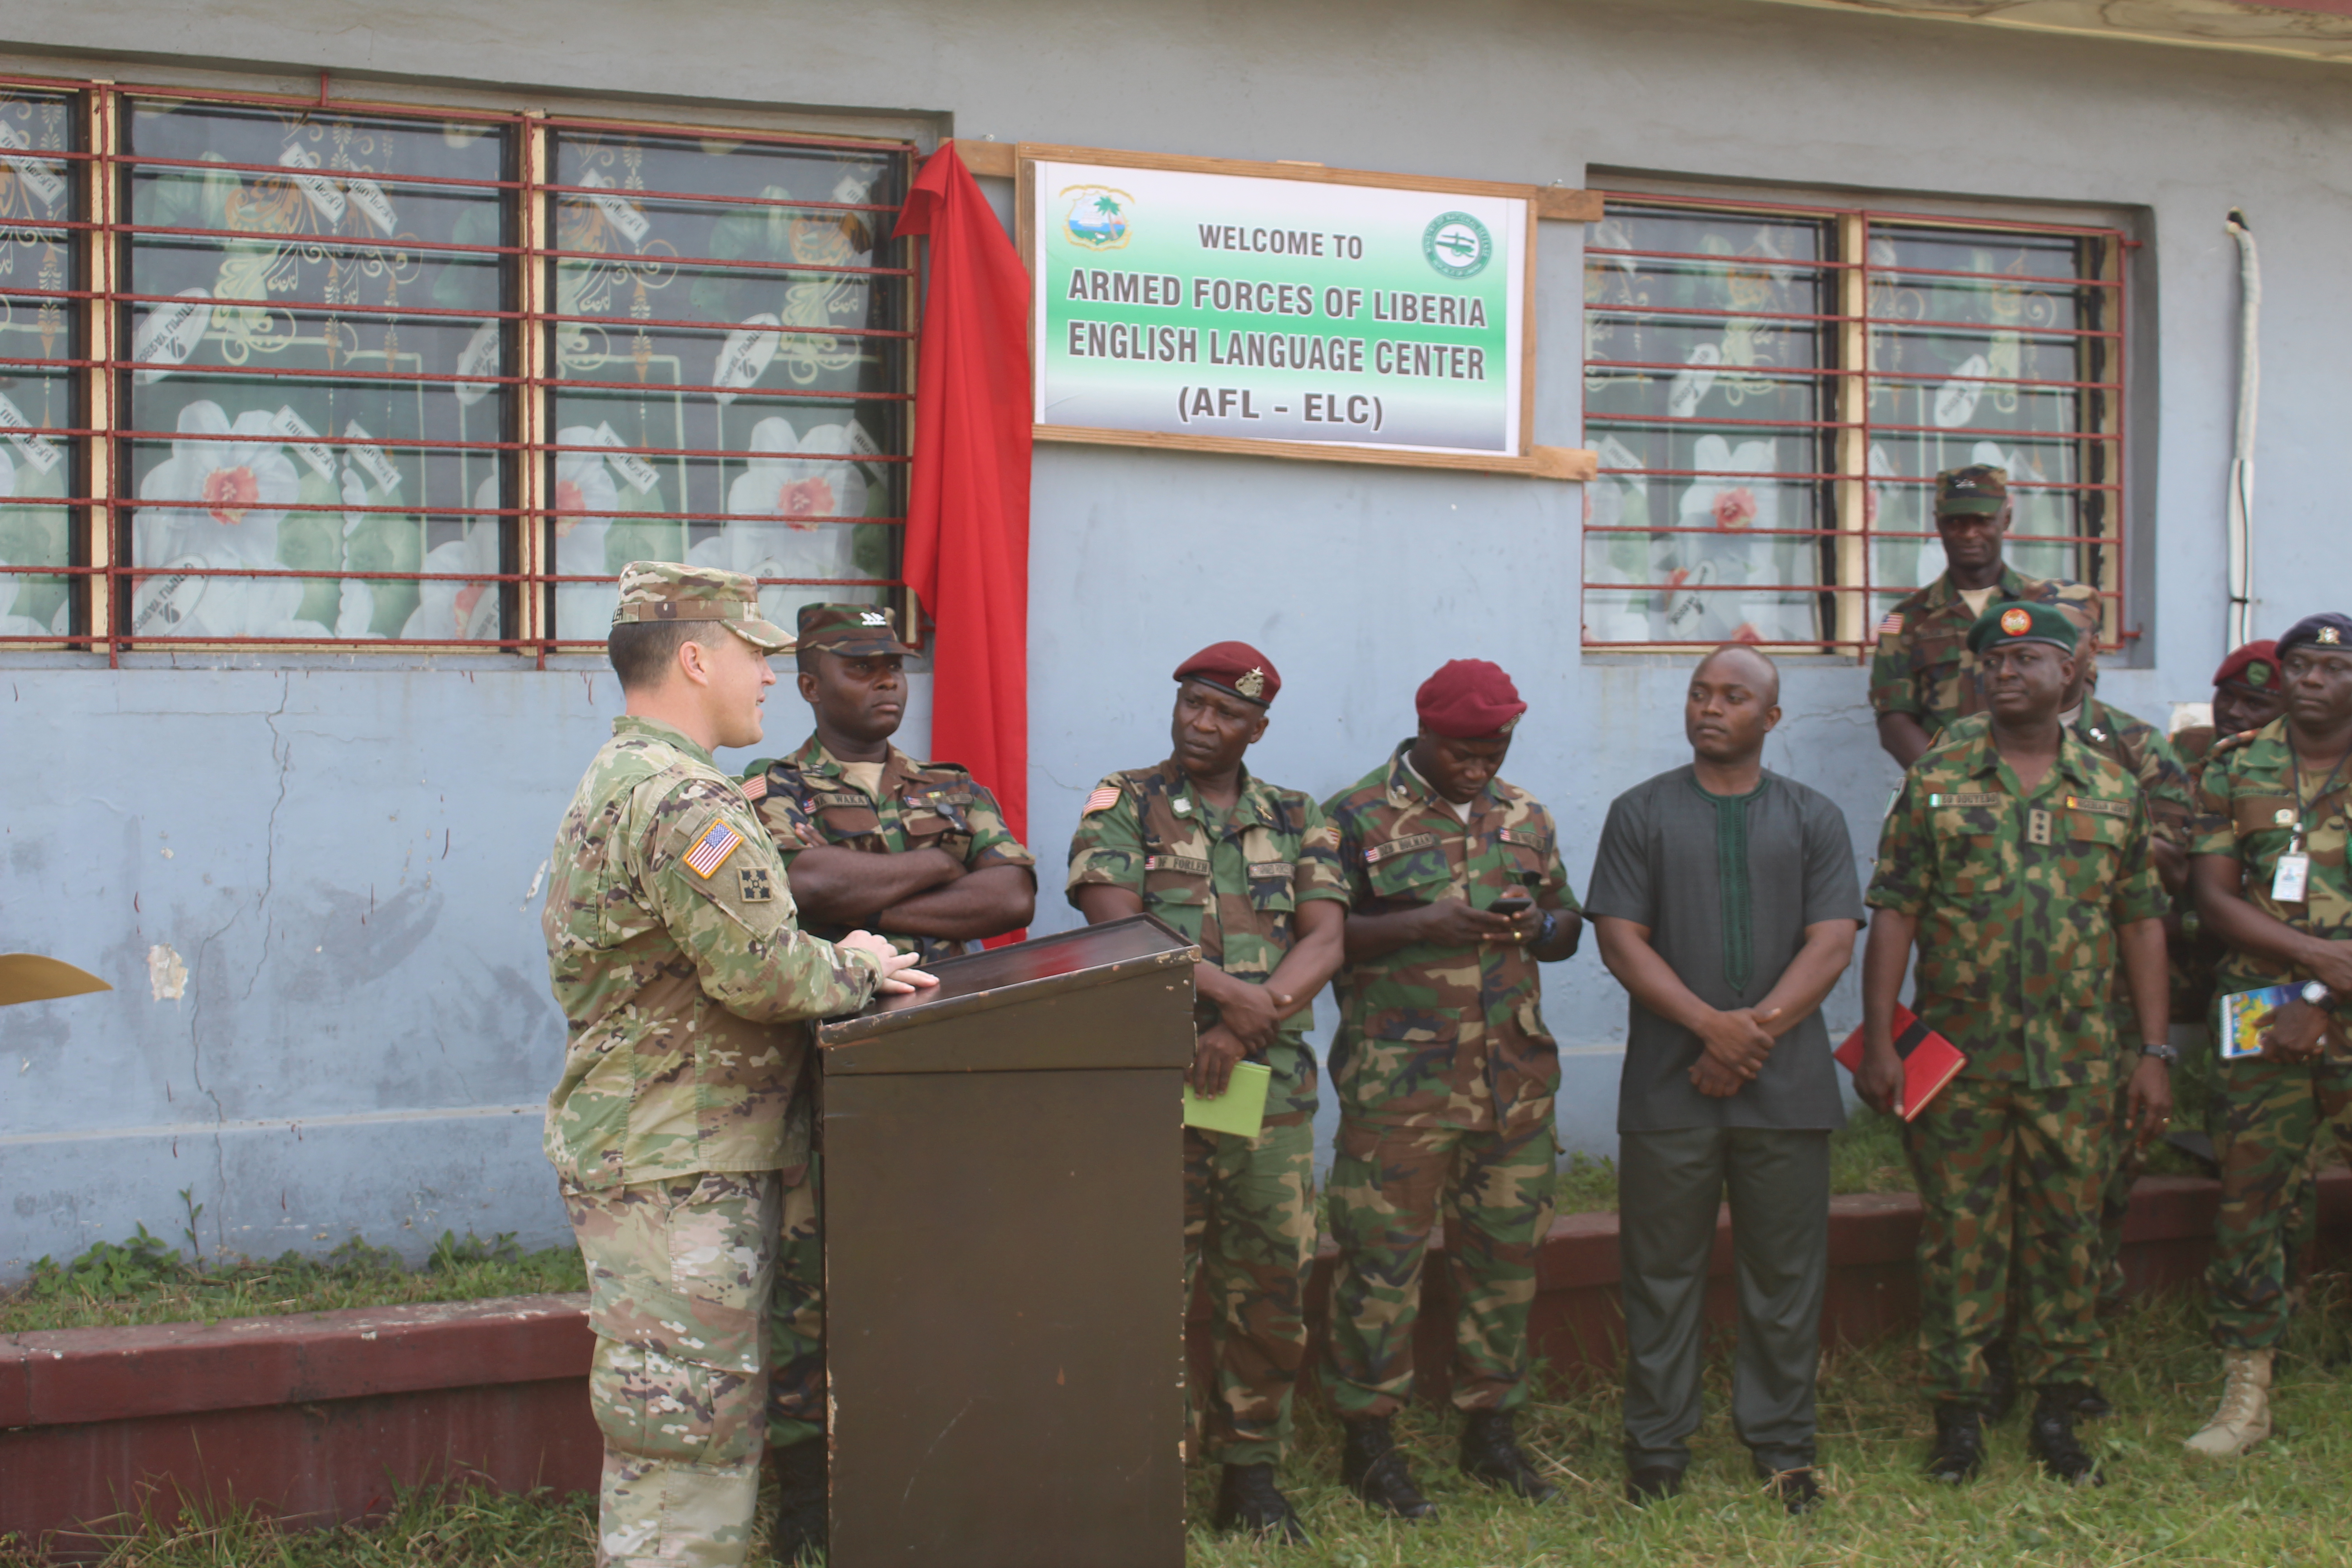 Maj. Michael Miller, Office of Security Cooperation Chief, U.S. Embassy Monrovia, gives welcome remarks during the dedication ceremony of the Armed Forces of Liberia English Language Center Jan 8, 2018.